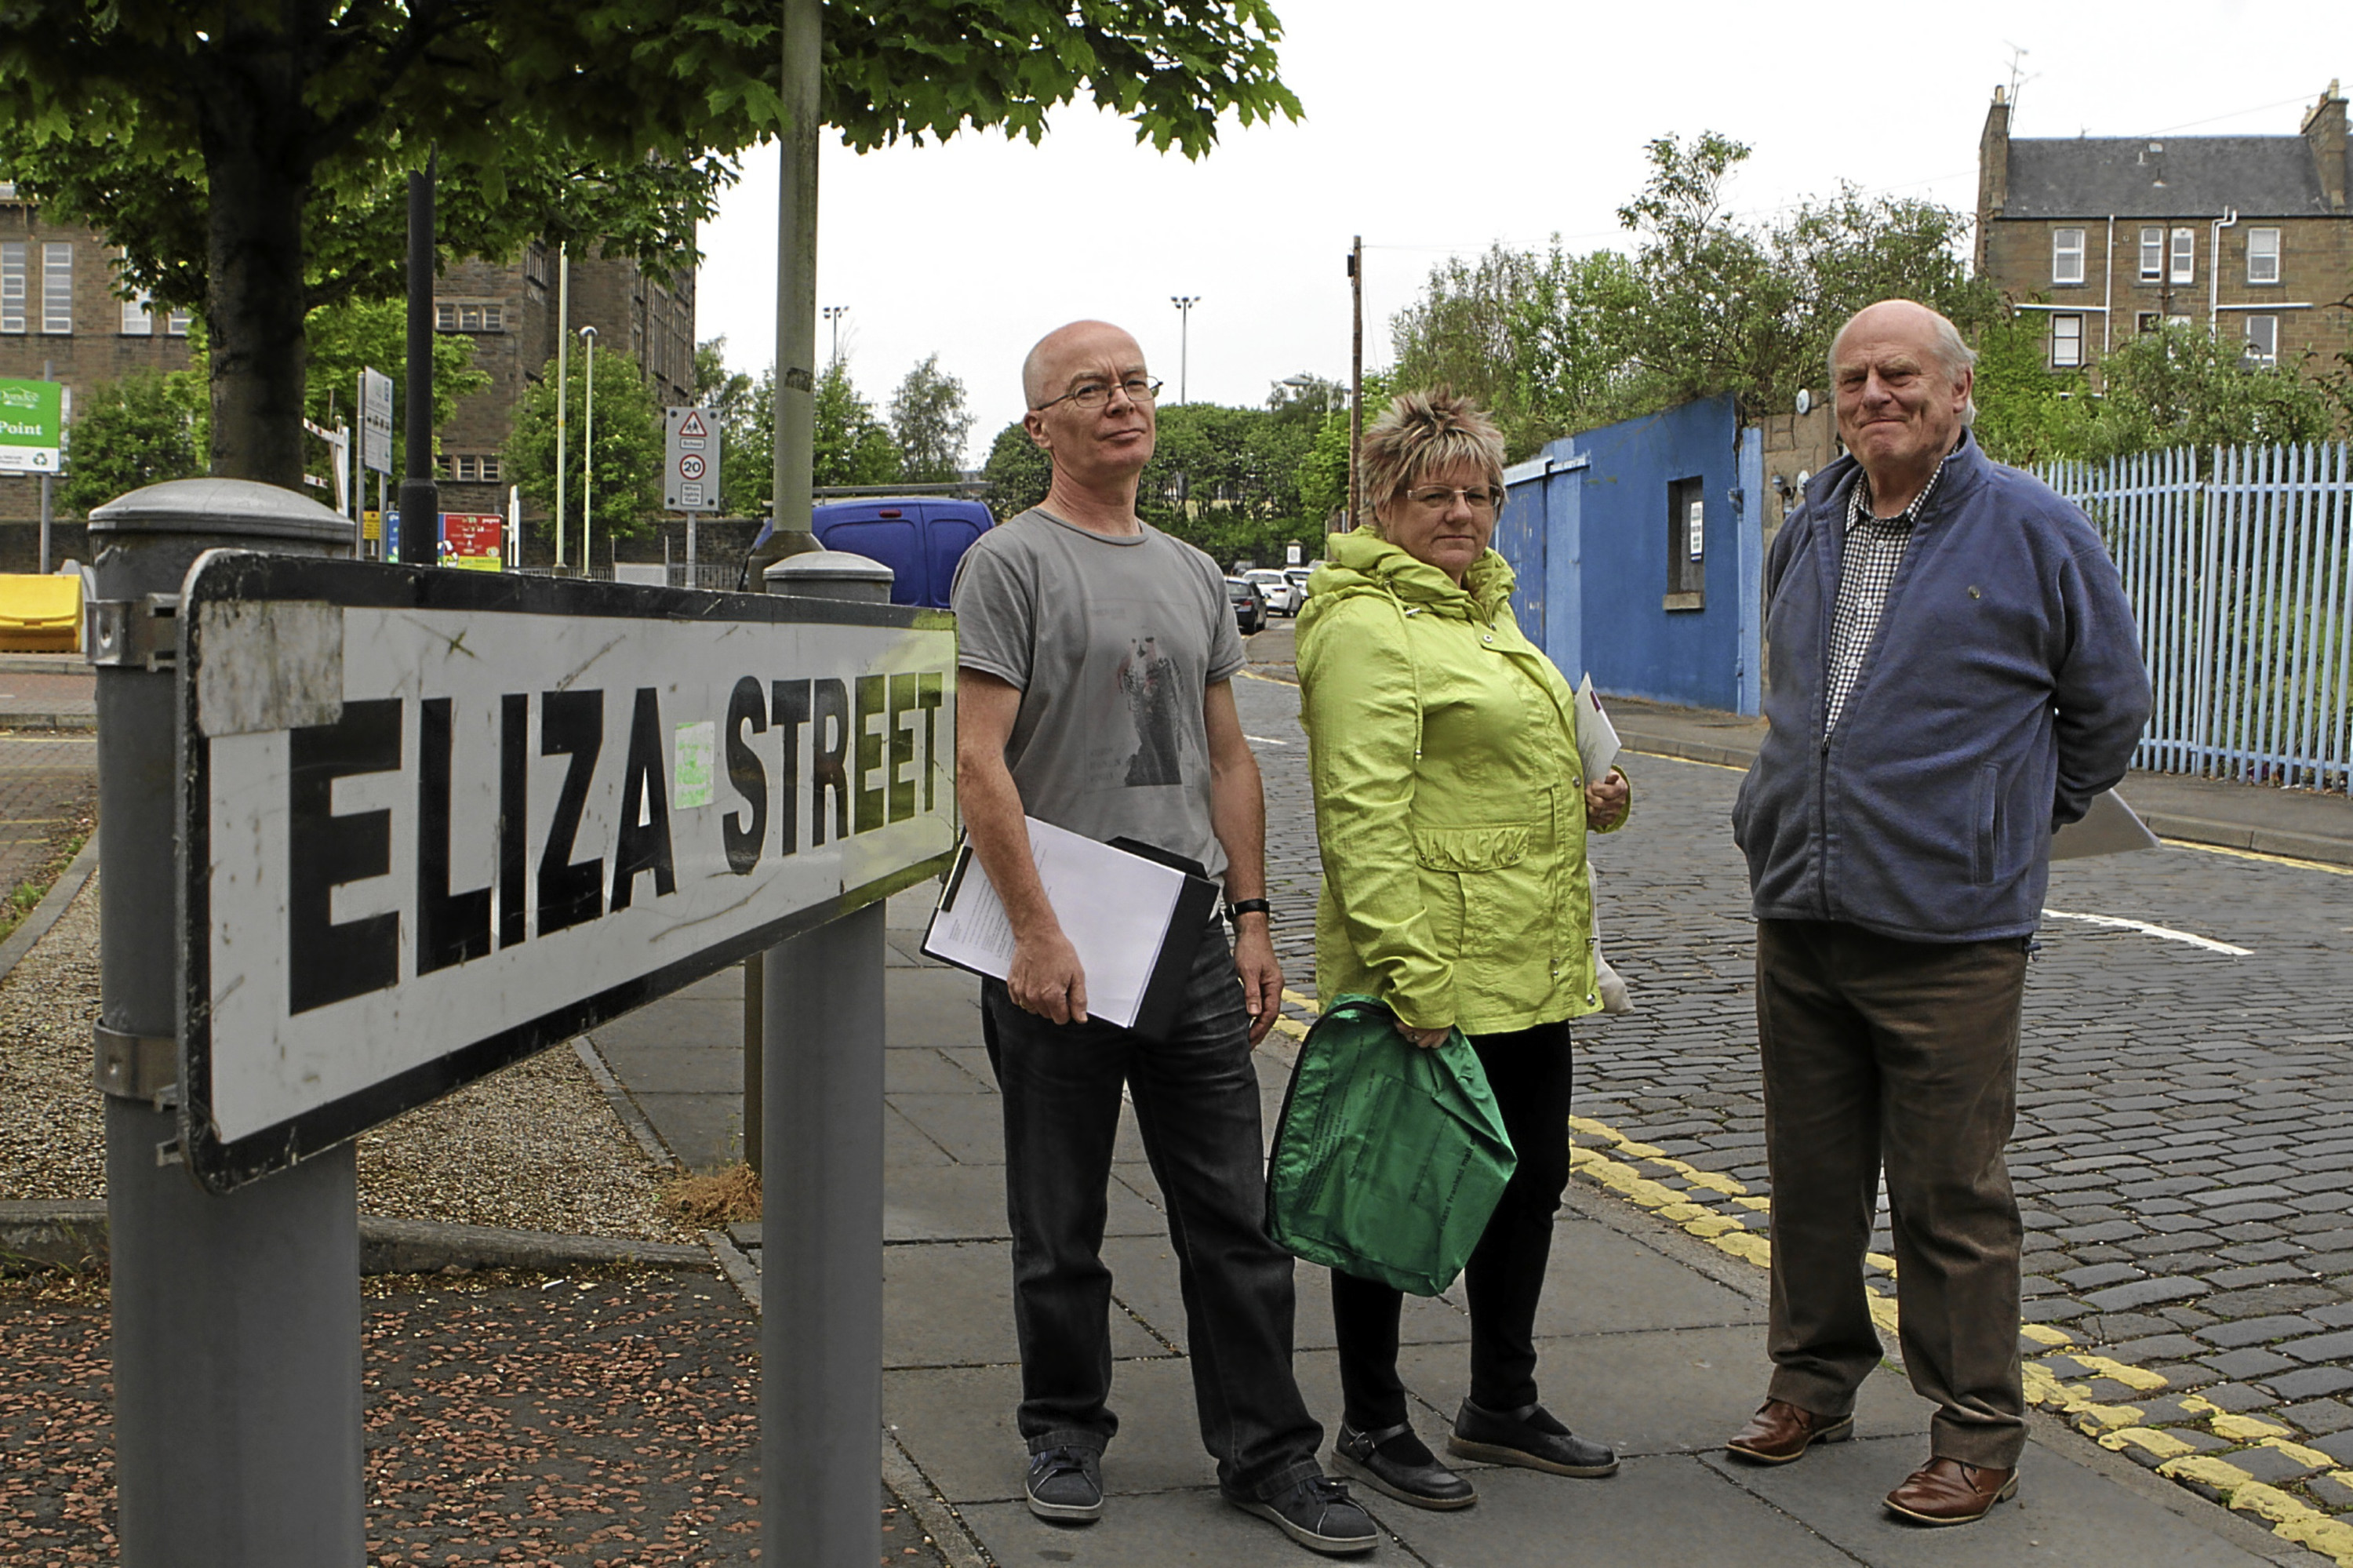 Duncan McCabe, Robbie Fotheringham and David Macdougall of the Stobswell Forum, who are opposed to housing plans on Eliza Street.